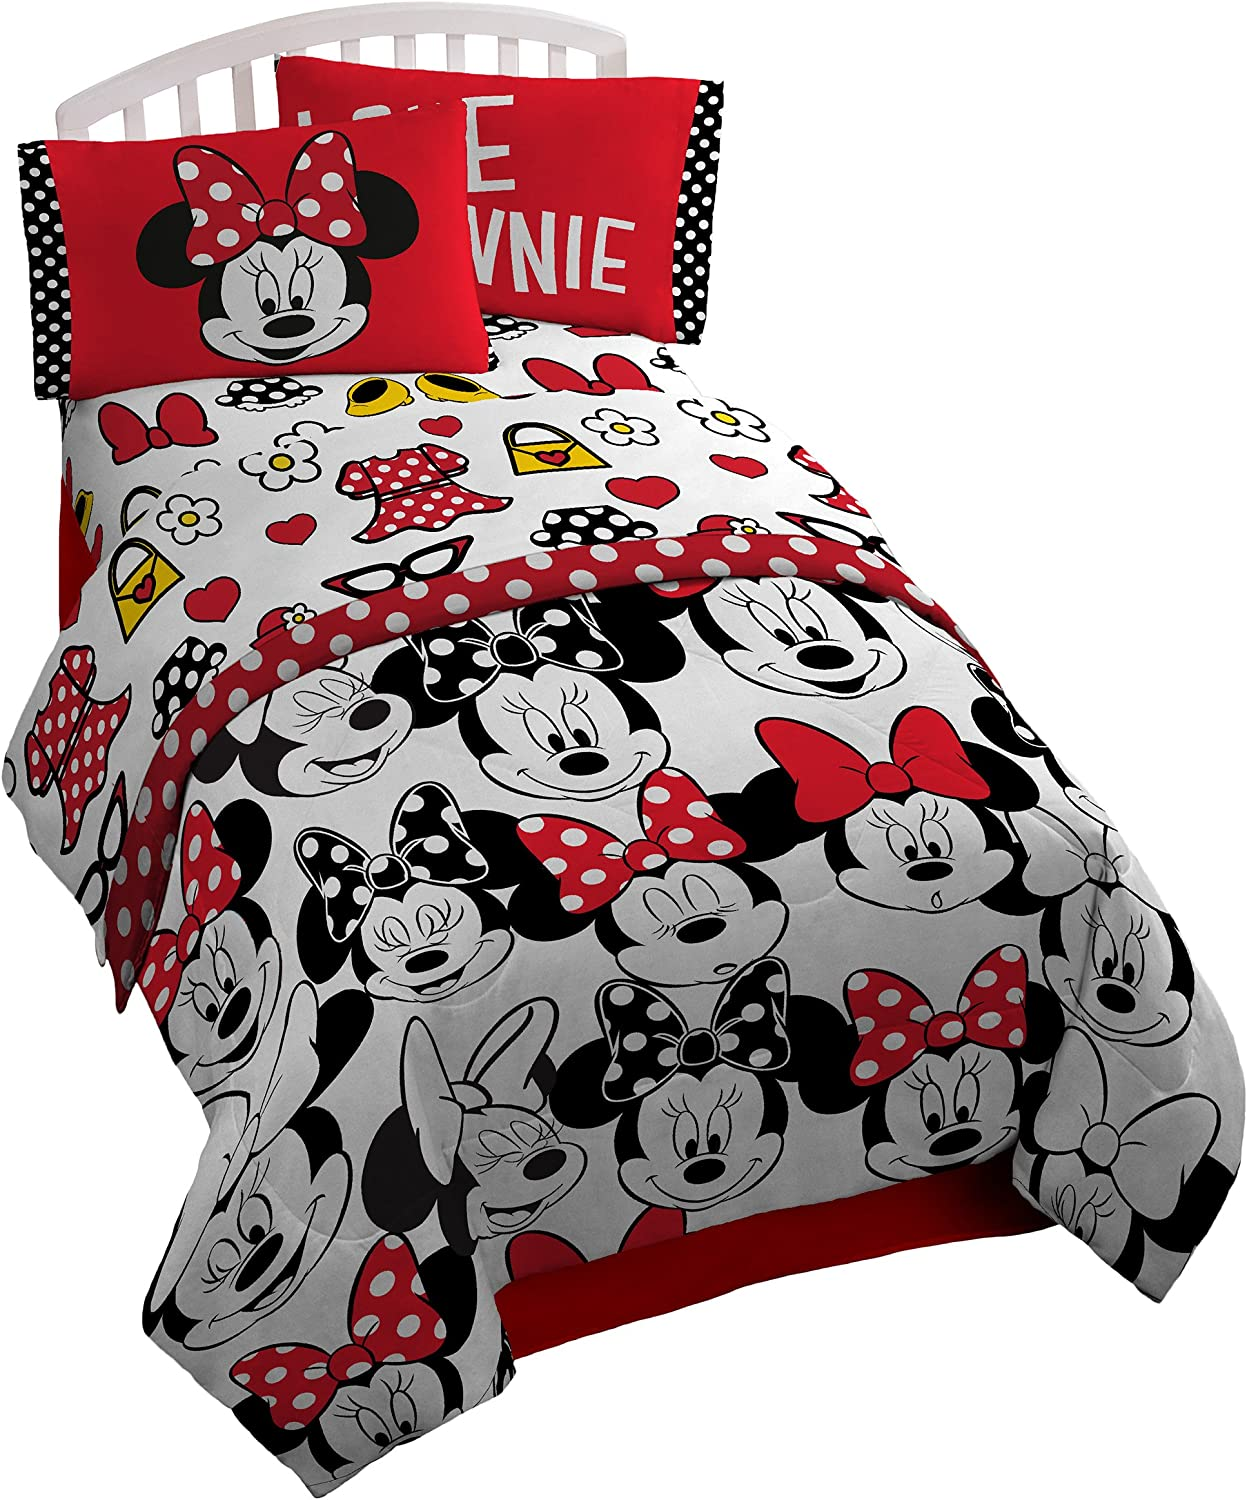 themed bedrooms for adults disney mickey mouse bedroom.htm amazon com disney minnie mouse all about dots microfiber  amazon com disney minnie mouse all